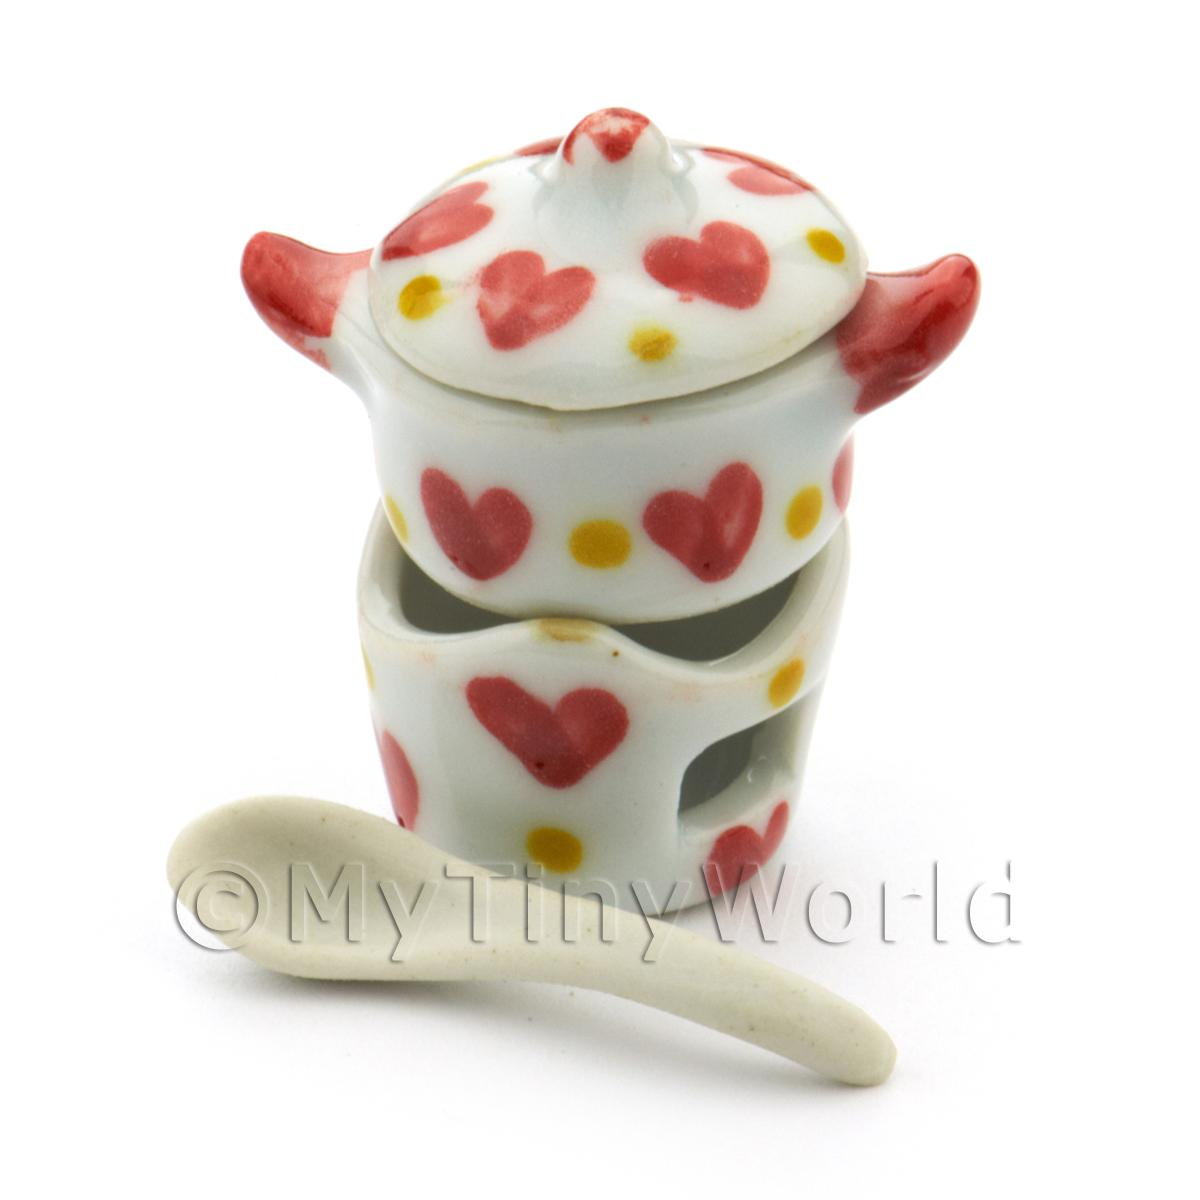 Dolls House Miniature Heart Pattern Ceramic Fondue Set